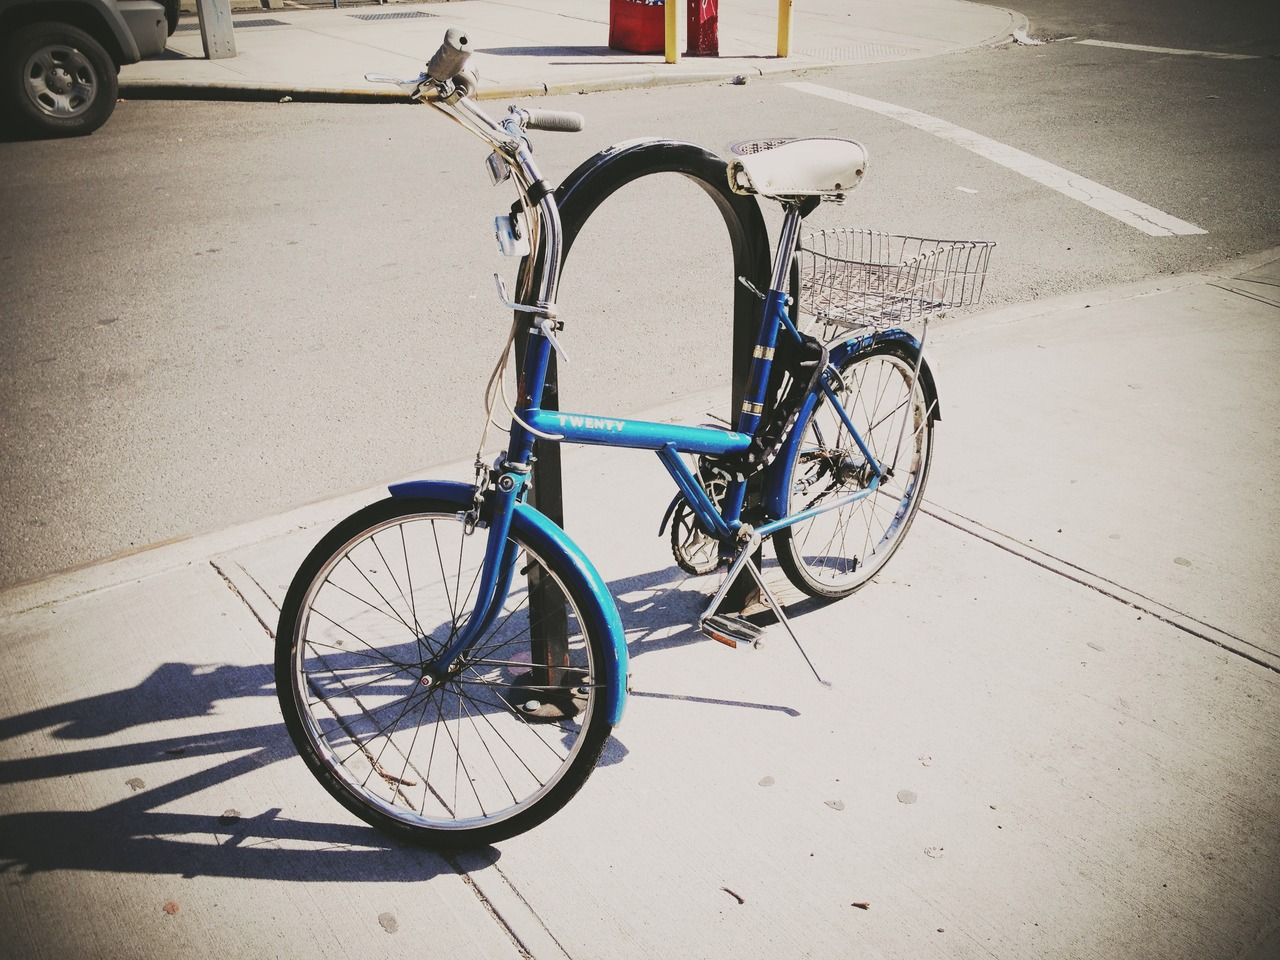 Would You Like To Ride #peppersearching #pepper #photos #bike #rack #street